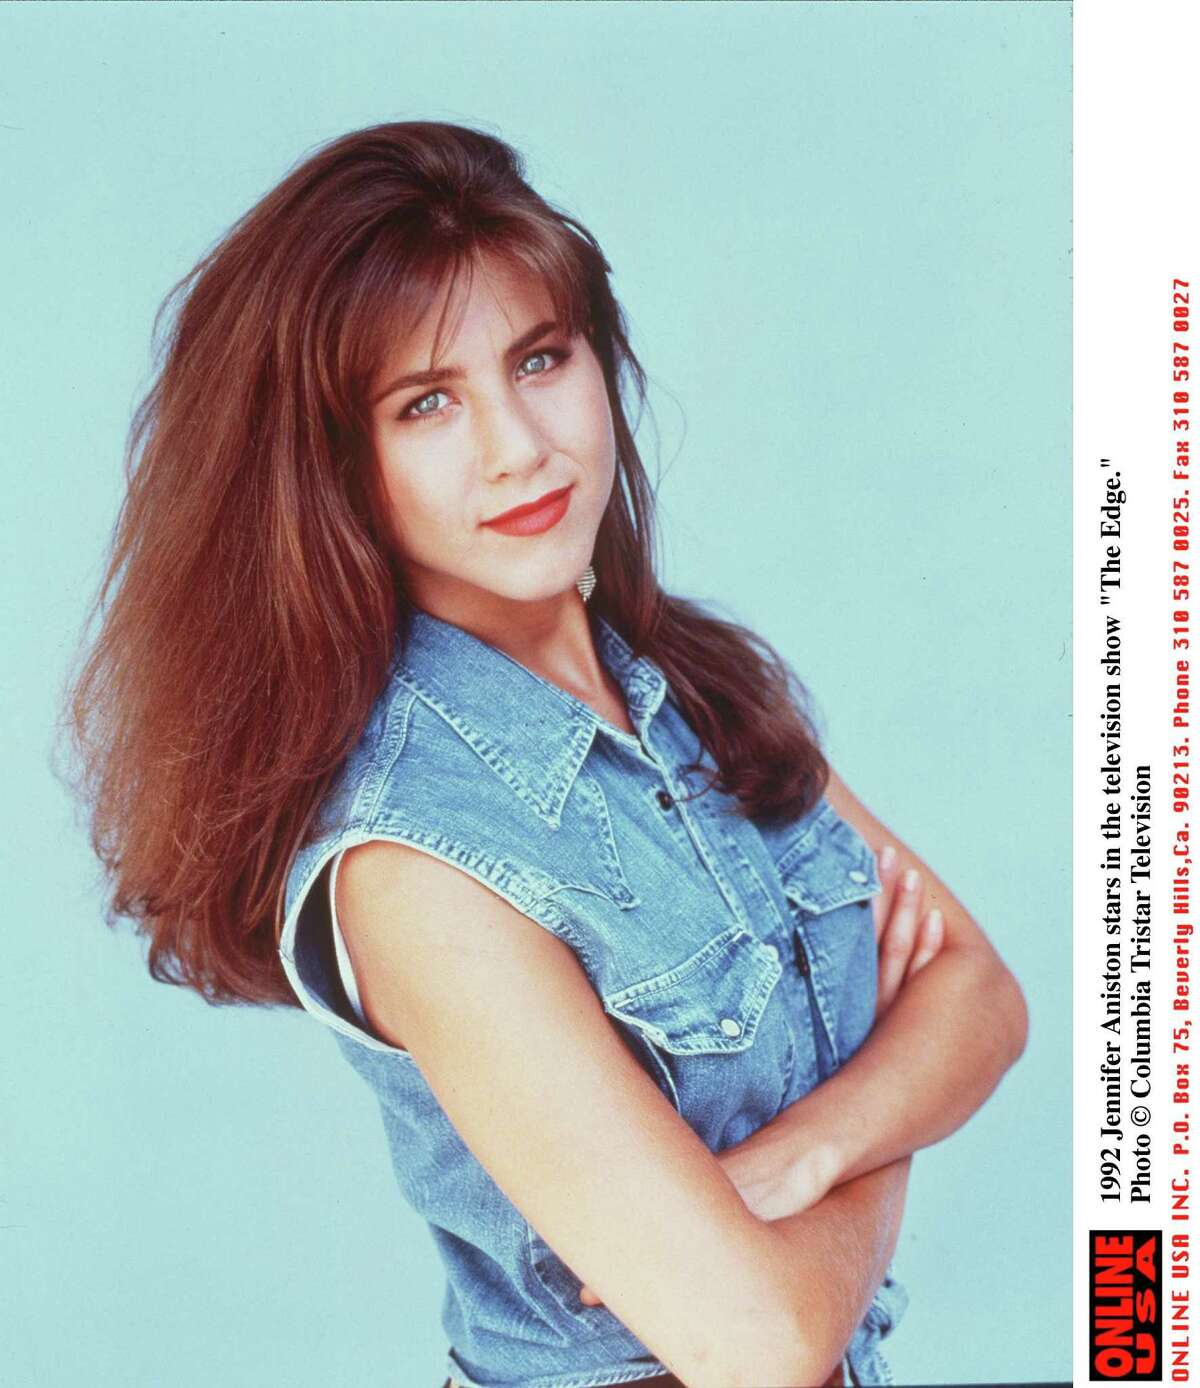 Twenty years ago, Aniston -- then a redhead -- appeared on TV in